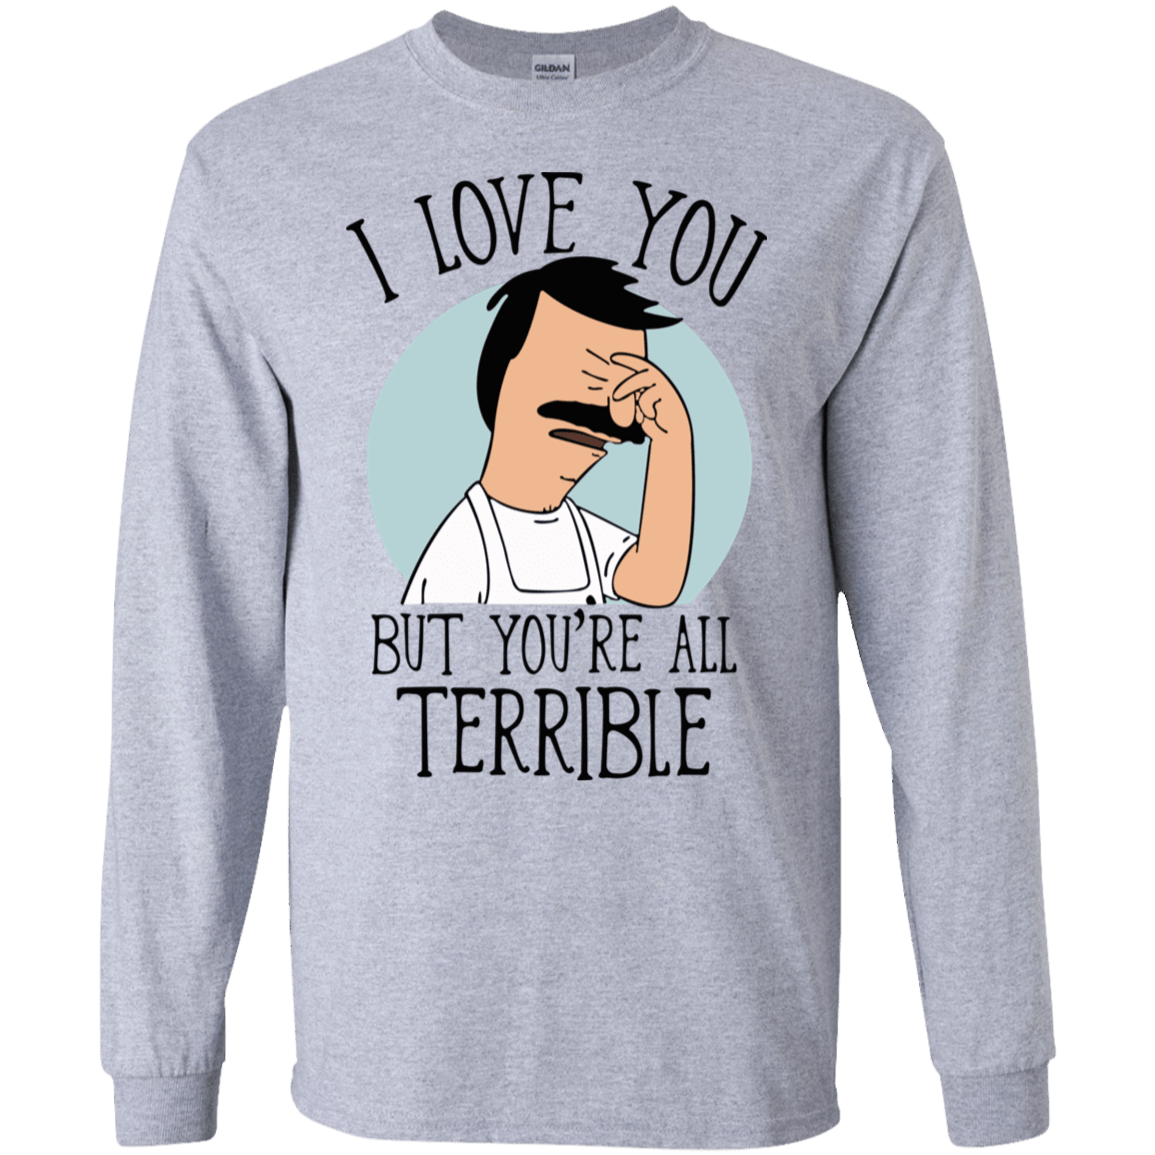 Bob's Burgers: I Love You But You're All Terrible 30-188-72789299-335 - Tee Ript